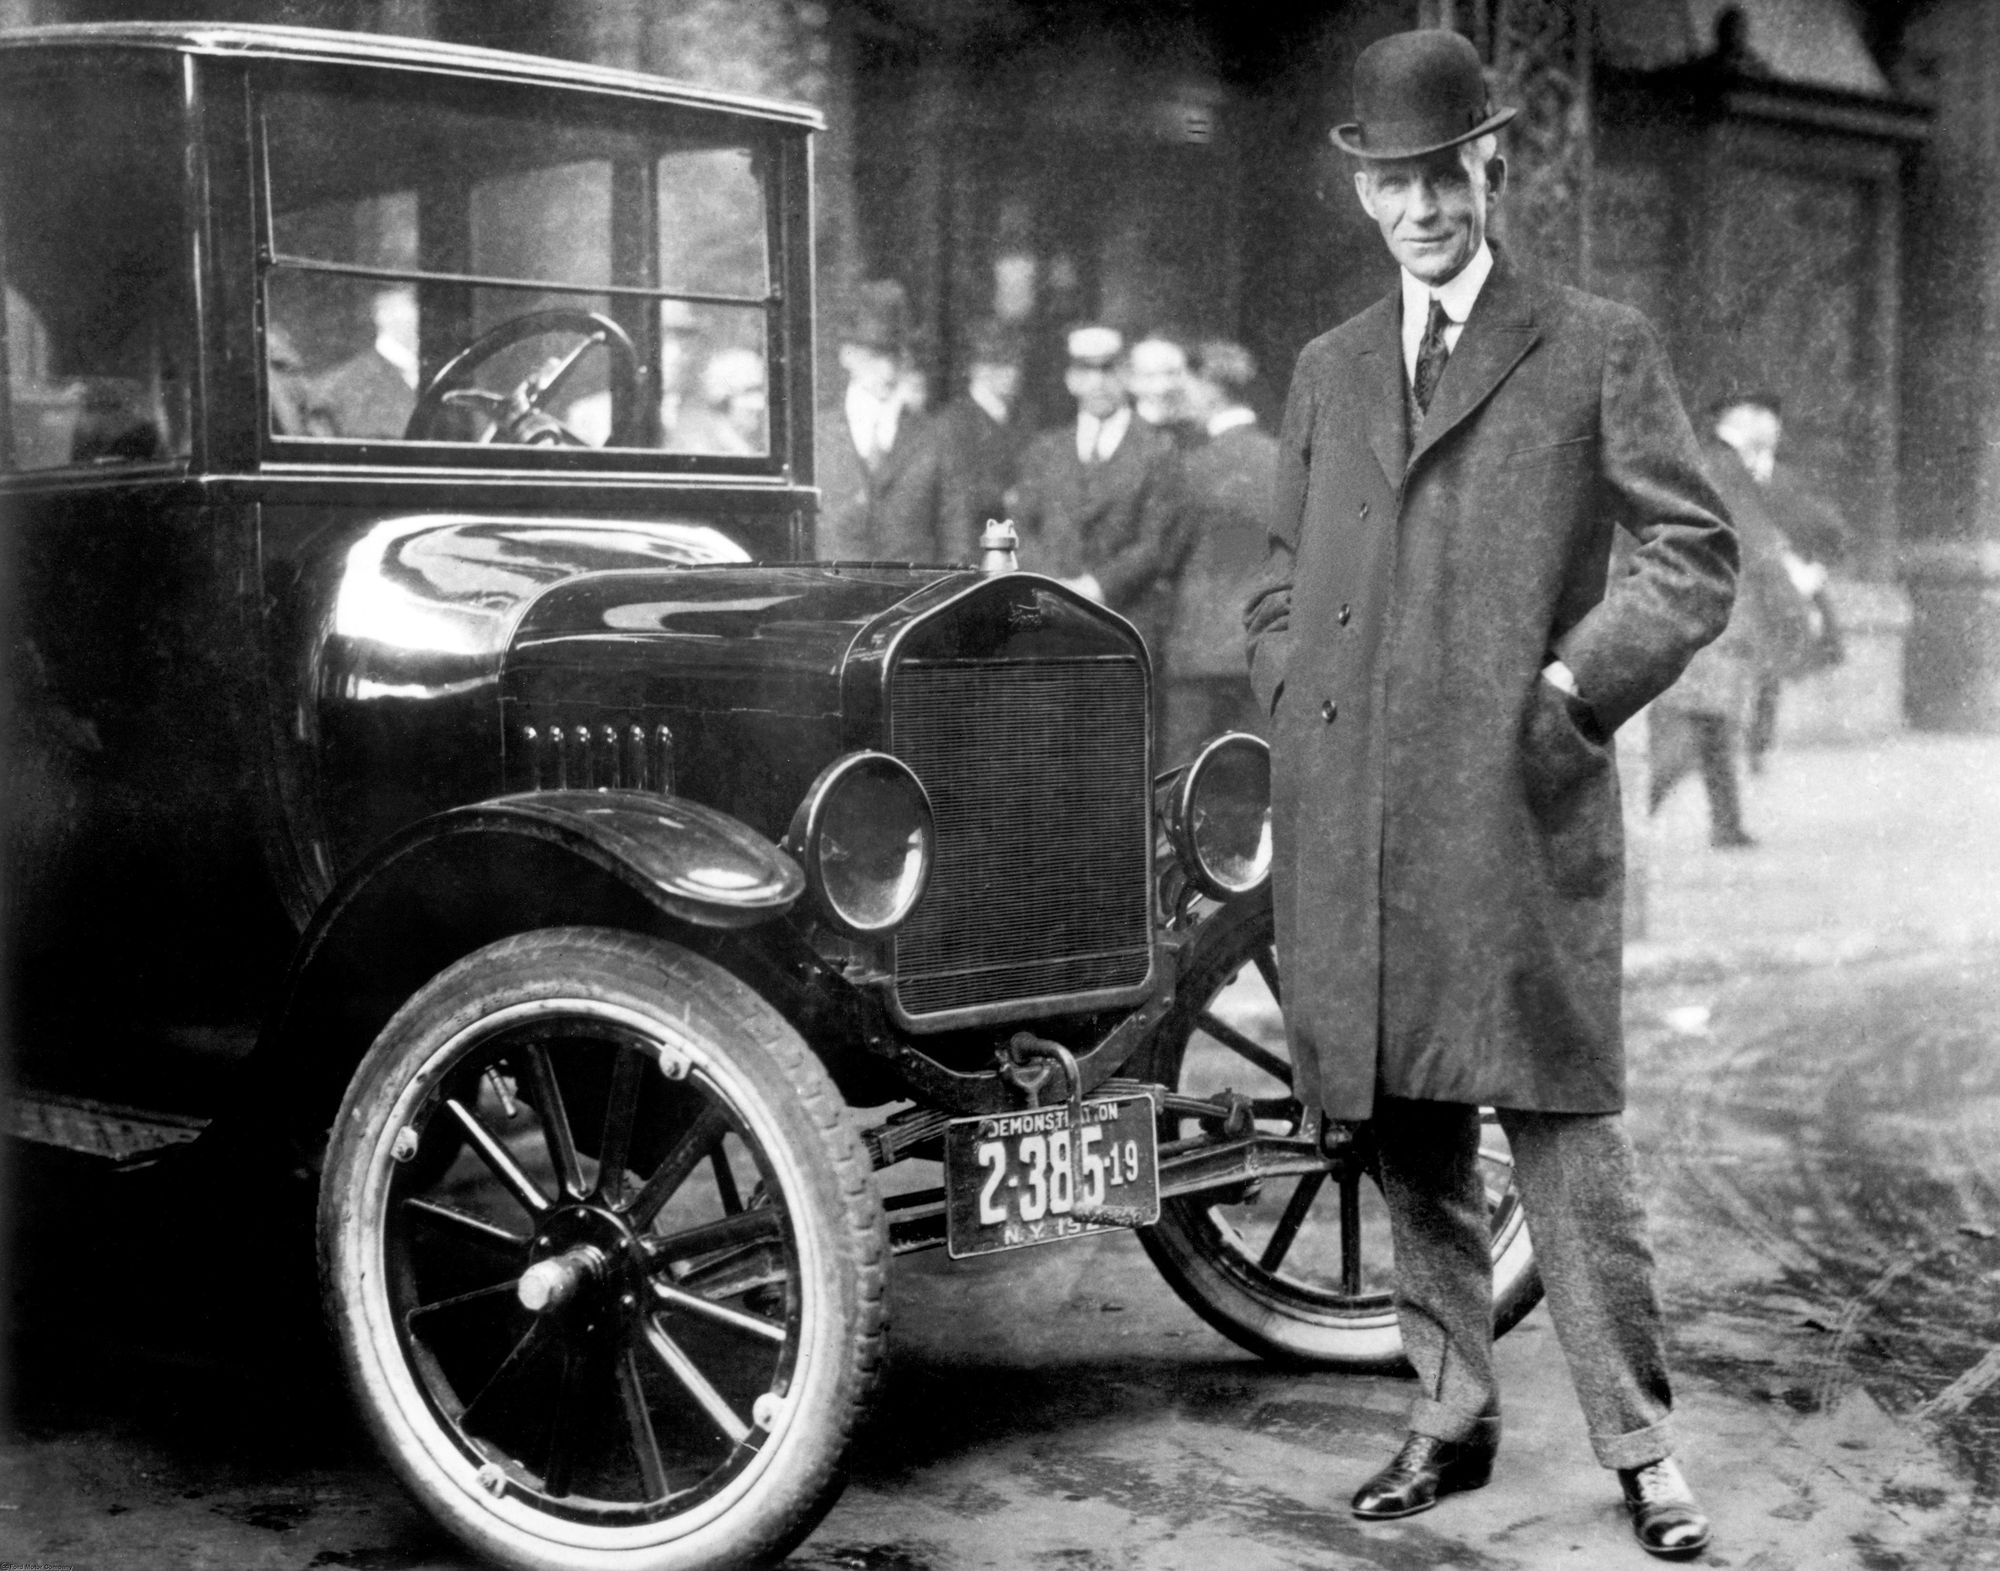 While other auto makers wanted to design luxury cars Henry Ford designed a car that anyone could afford. Here he is standing by that very car. From the collections of The Henry Ford and Ford Motor Company.